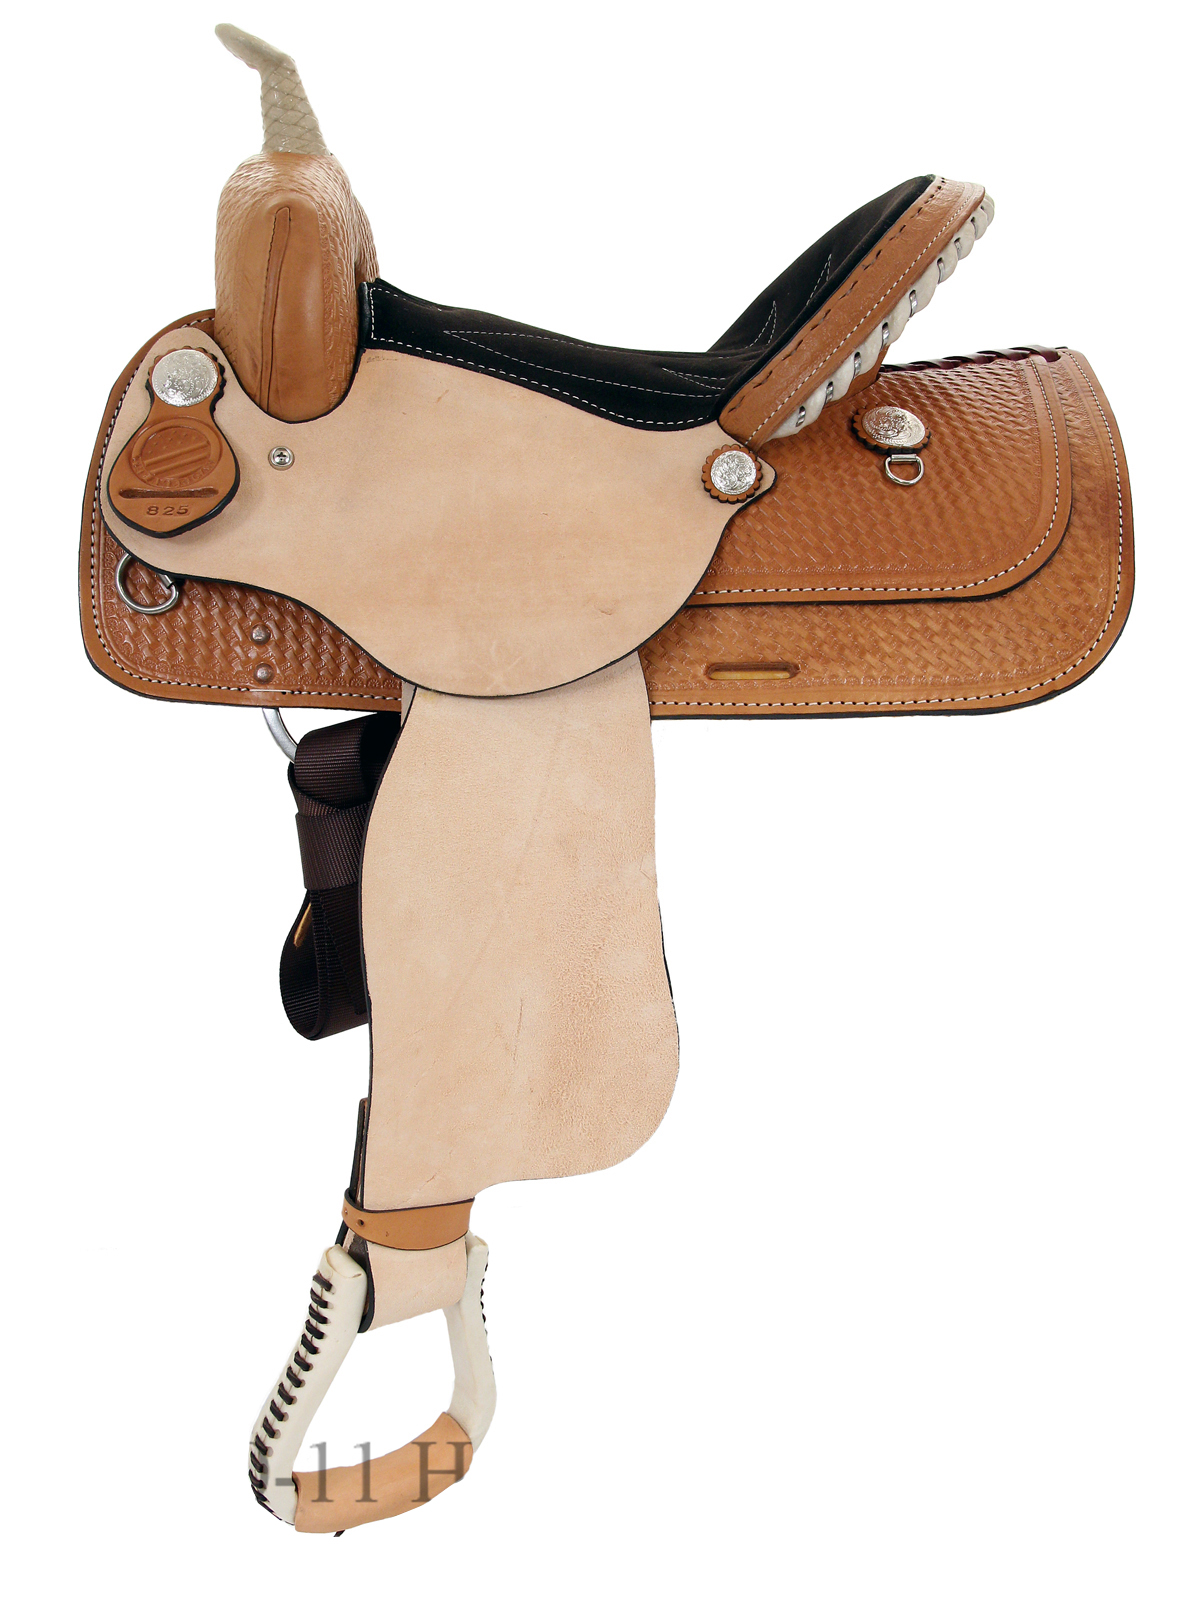 13inch to 16inch American Saddlery The Denero Barrel Racing Saddle 824-825